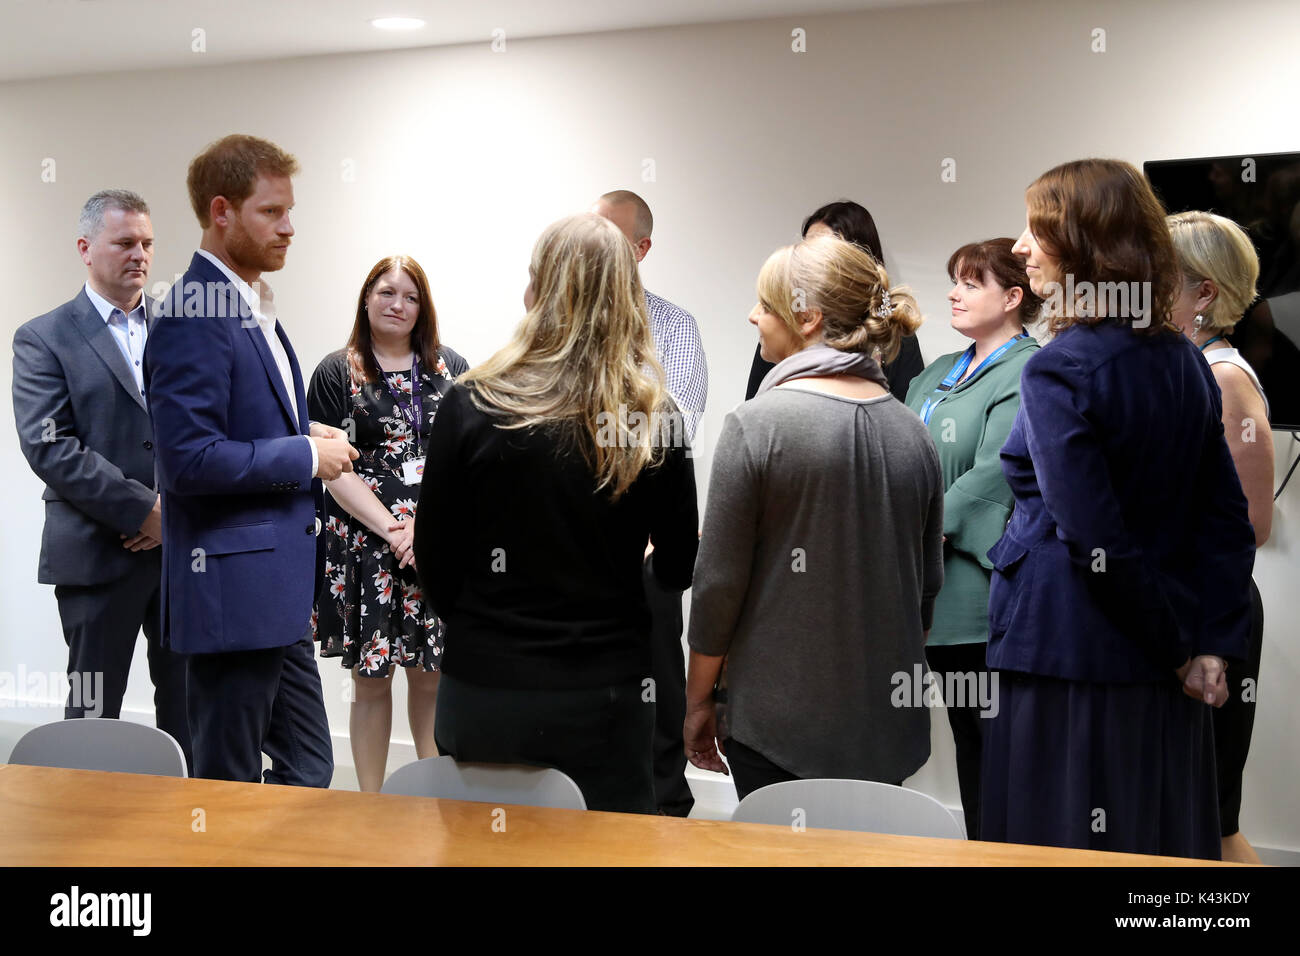 MANCHESTER, ENGLAND - SEPTEMBER 04: Prince Harry (2ndL) visits the NHS Manchester Resilience Hub on September 4, 2017 in Manchester, England. (Photo by Chris Jackson - Pool/Getty Images) - Stock Image